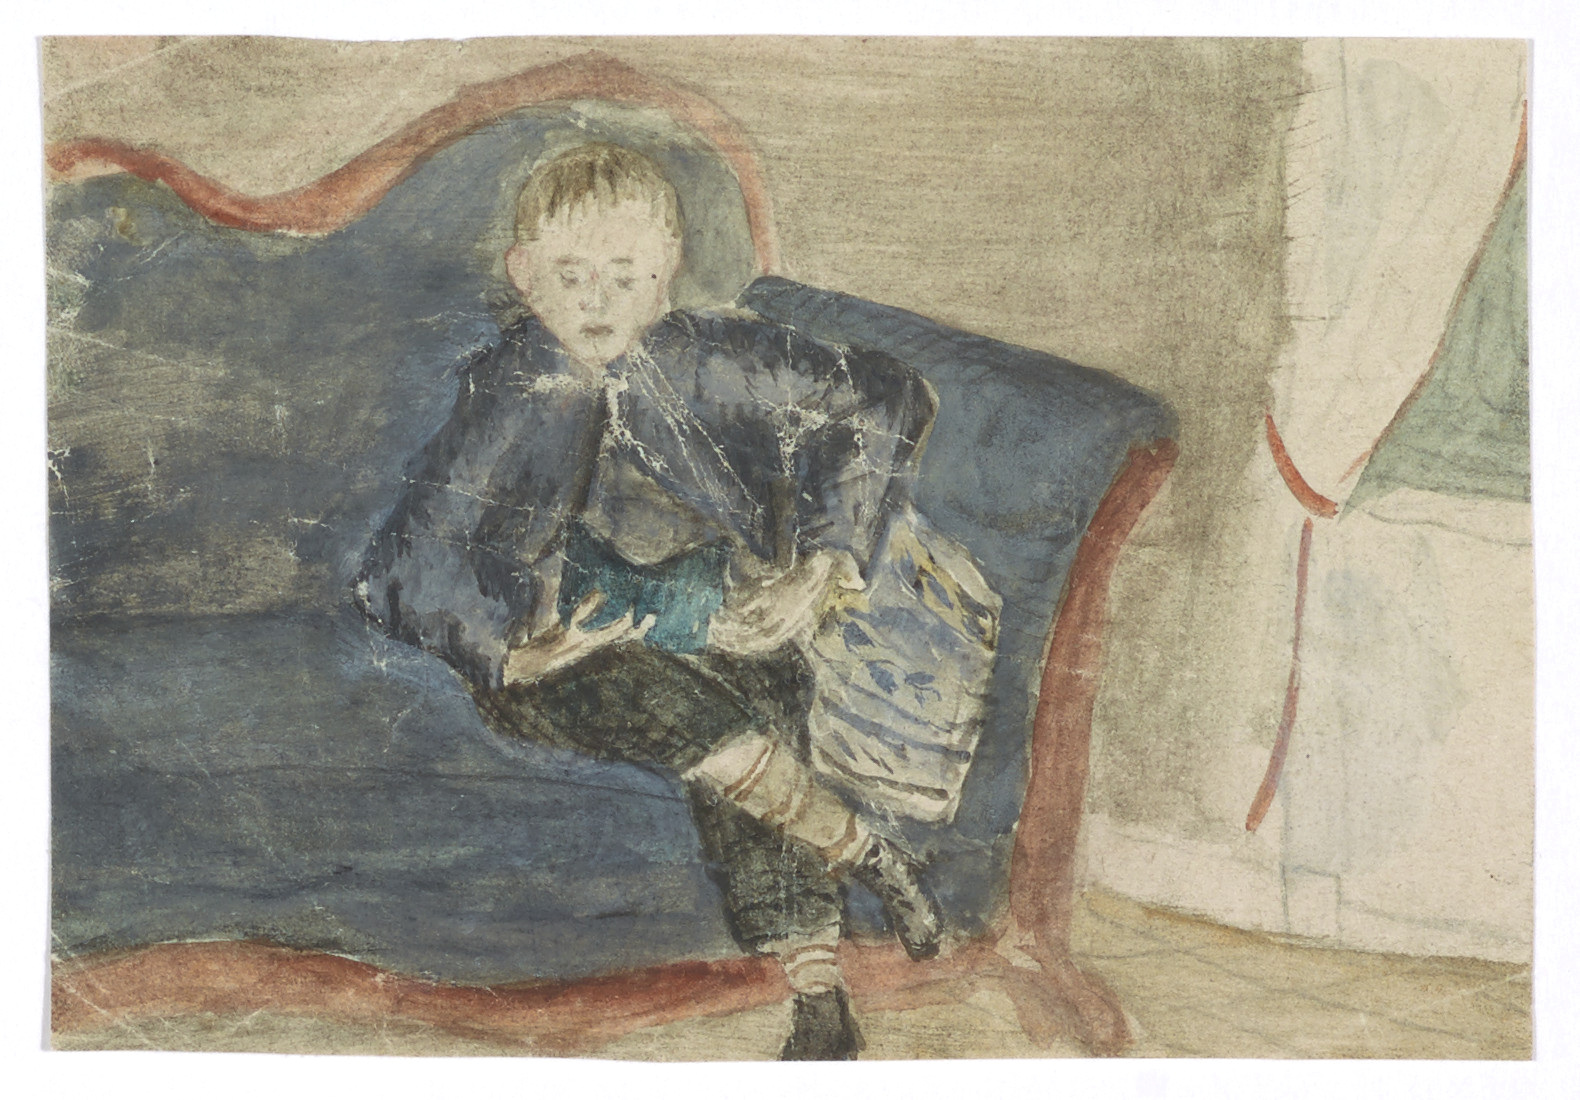 Edvard Munch: Andreas on the couch. Watercolour and pencil. 1875. Photo © Munchmuseet